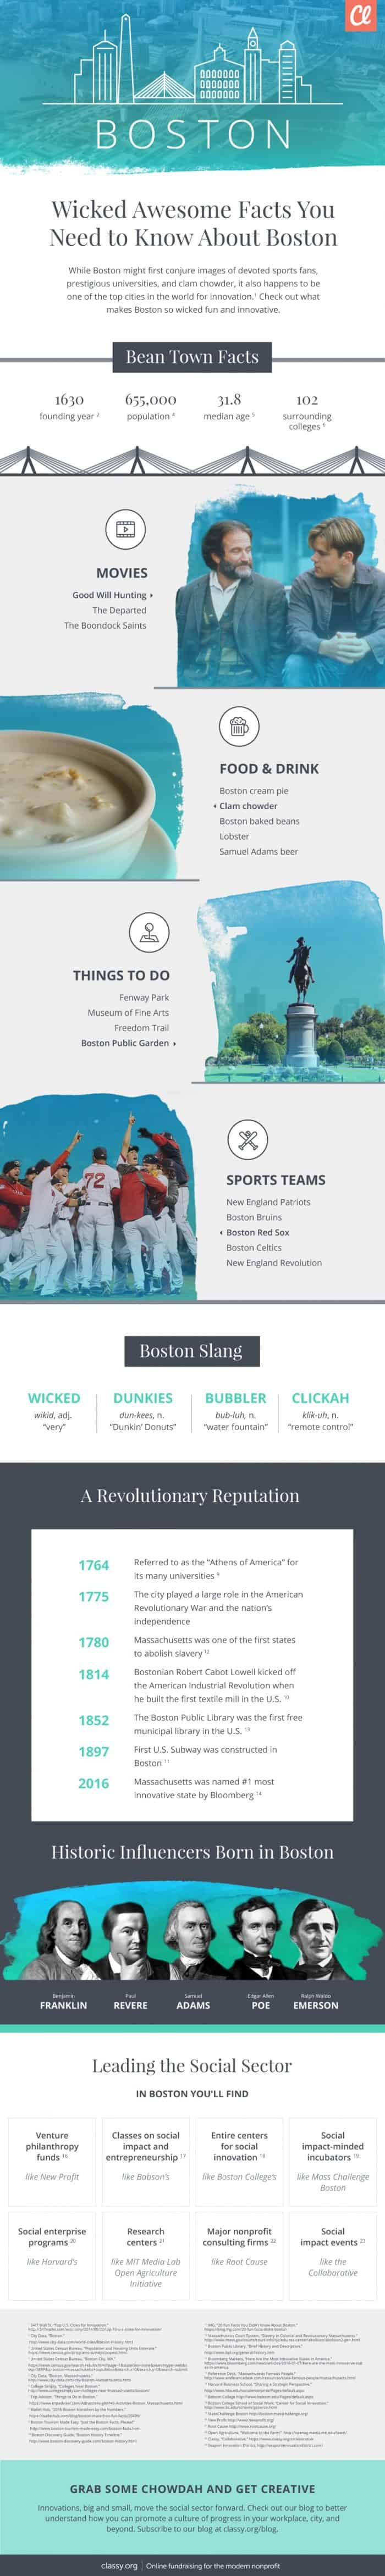 Awesome Things You Probably Don't Know About Boston